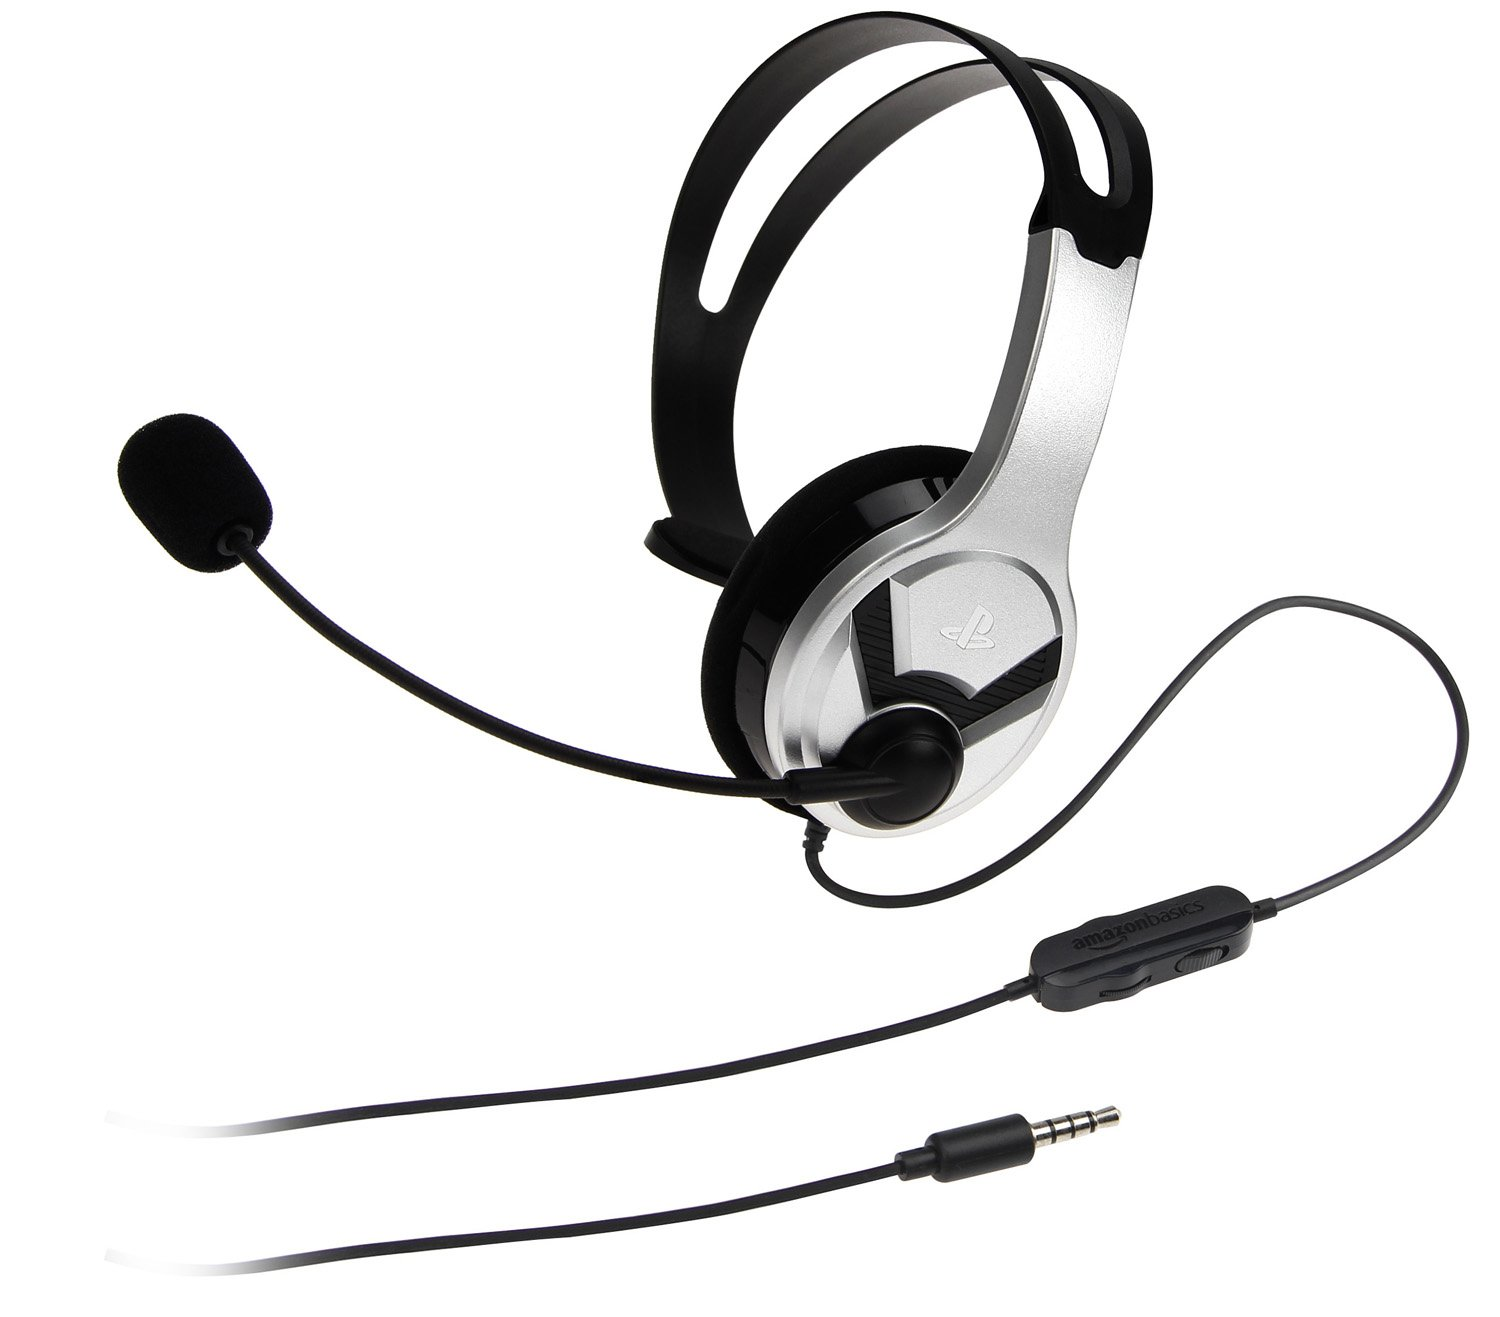 AmazonBasics Chat Headset for PlayStation 4 (Officially Licensed)  - Silver by AmazonBasics